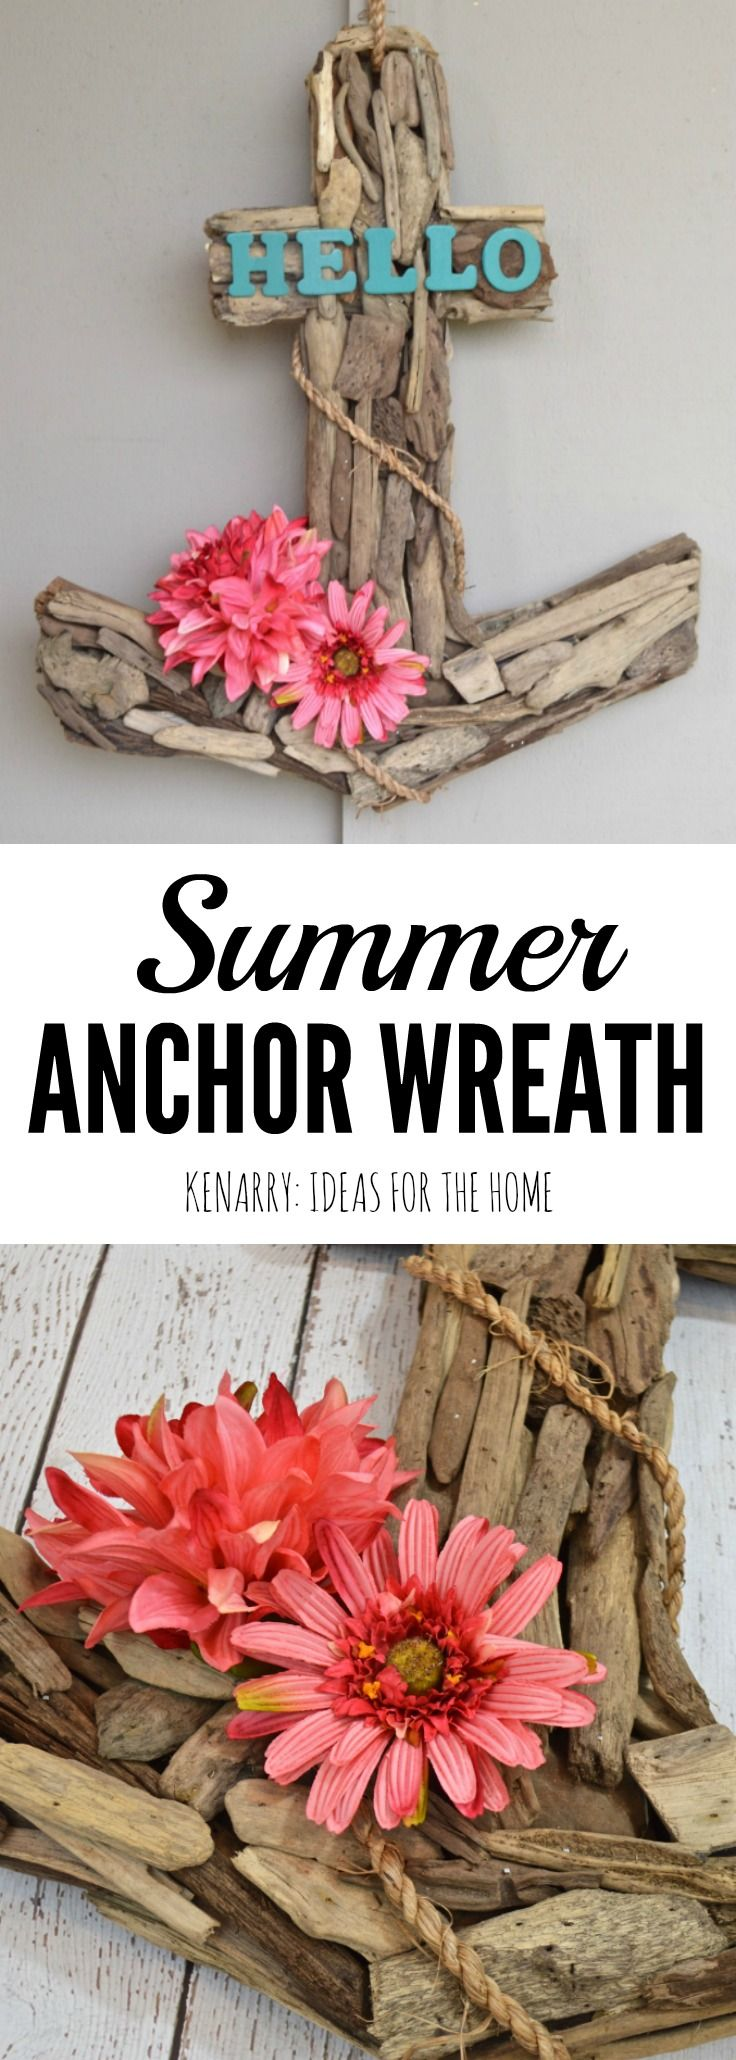 Anchor Wreath: A Nautical Decor Idea For Summer